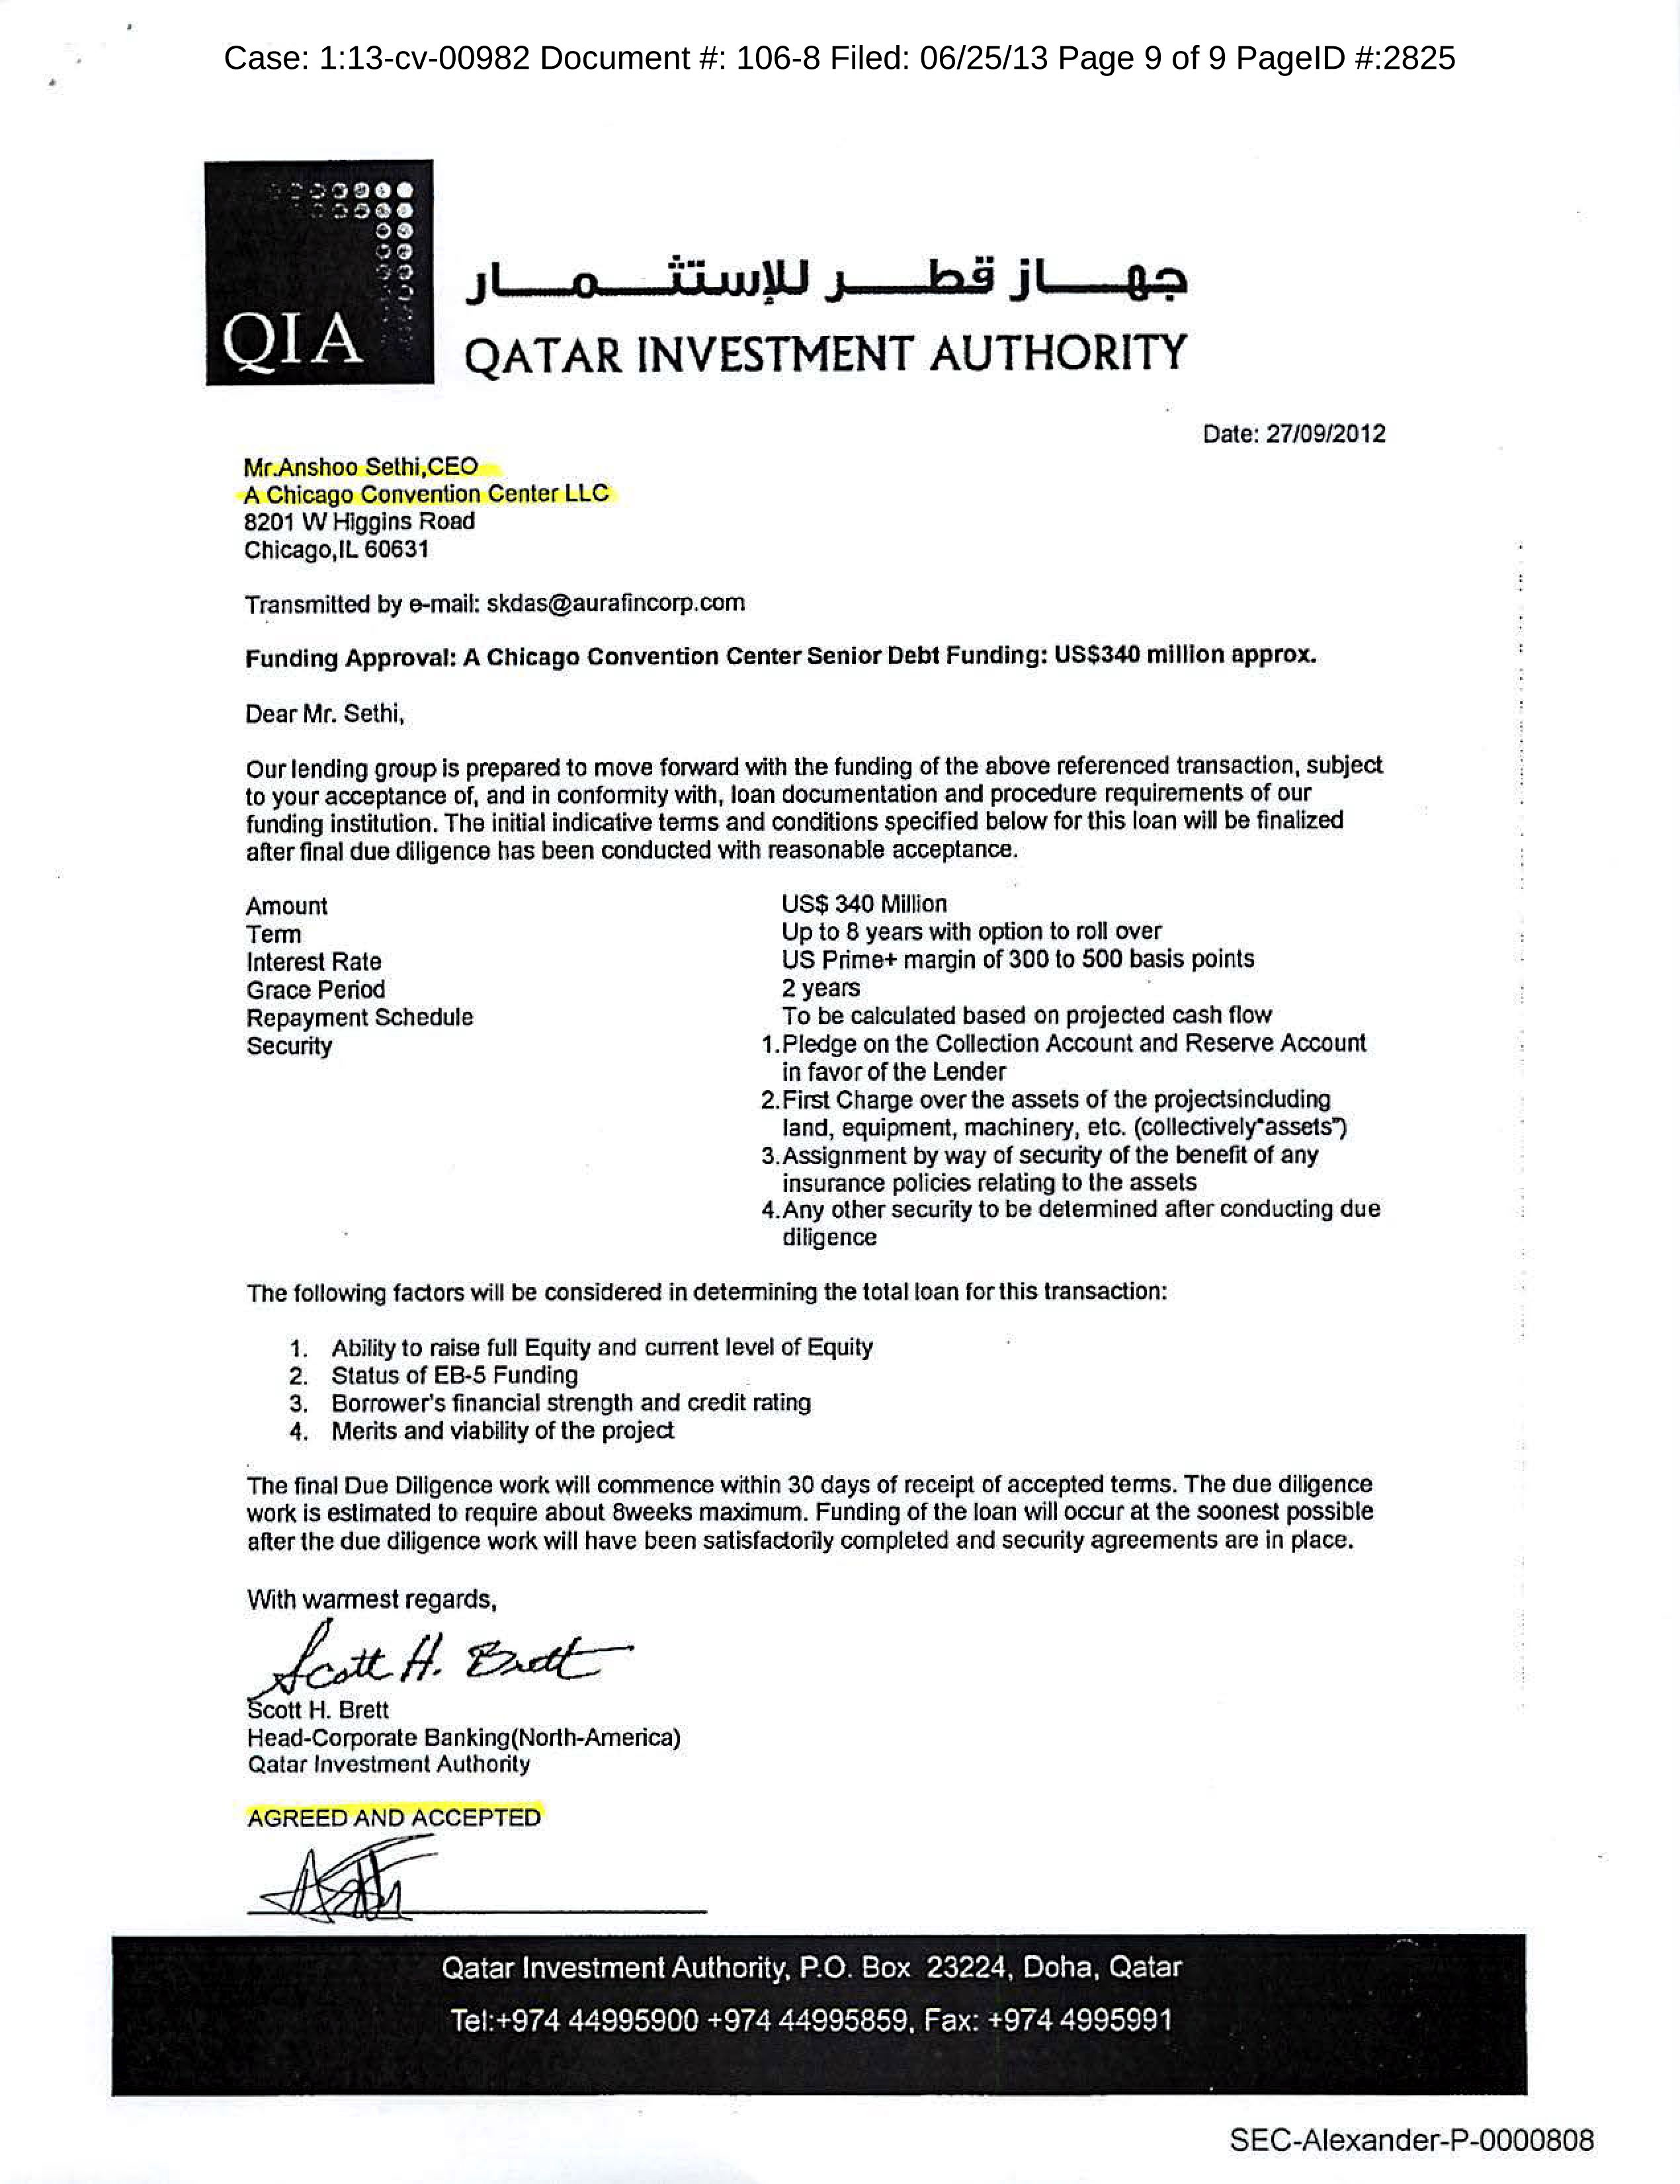 Sample Letter To Potential Investors For A Promotion Company